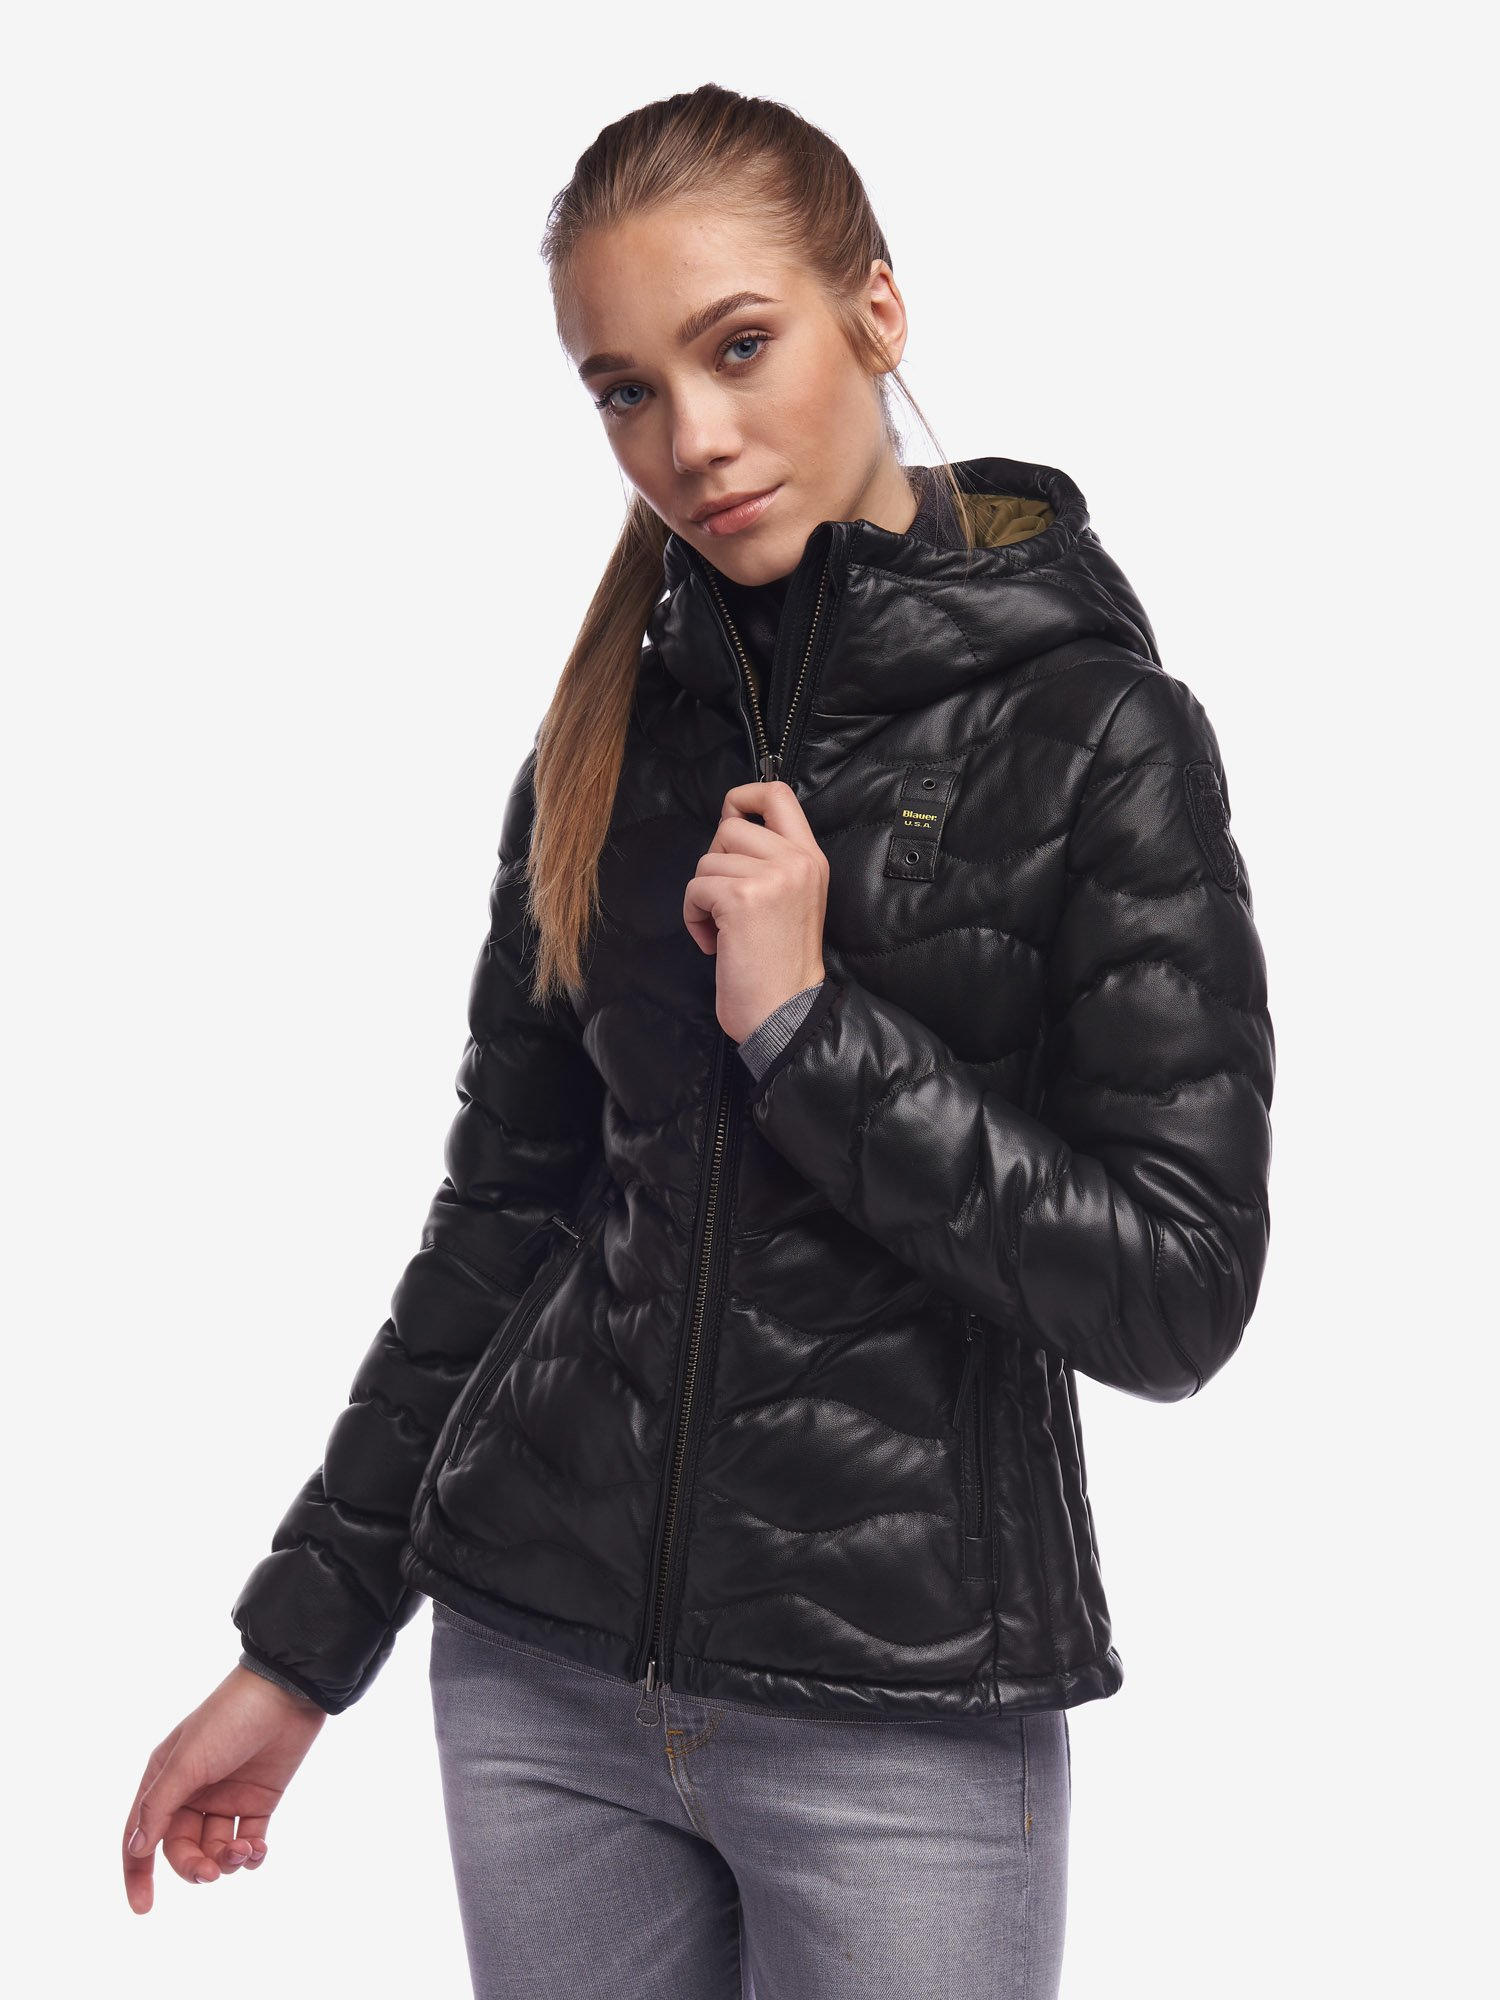 Blauer - DAVIES WOMEN'S JACKET IN COLOURED LEATHER - Black - Blauer